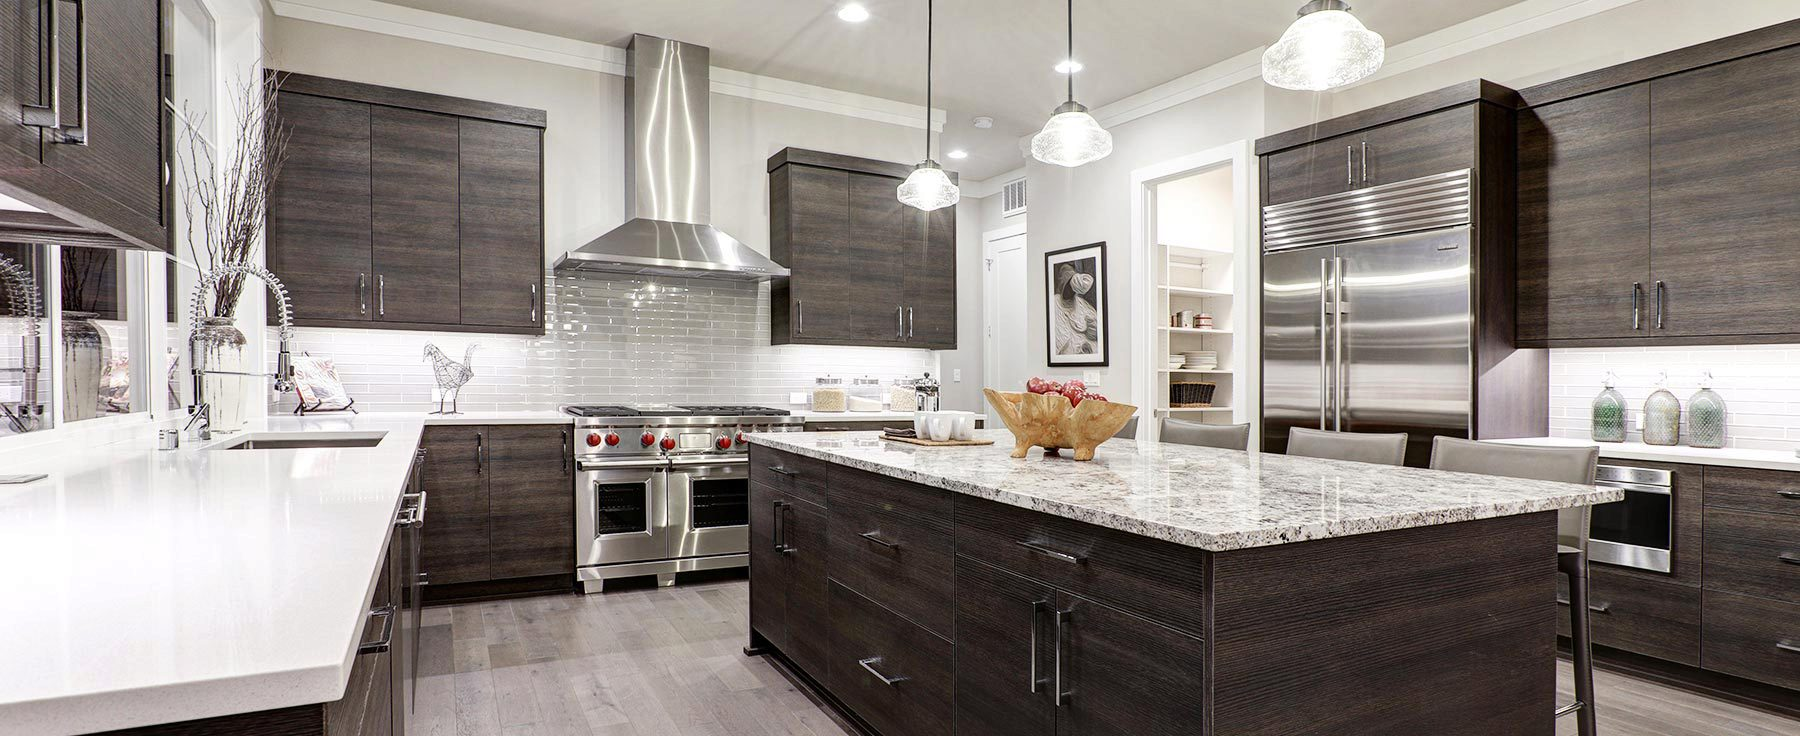 How To Get Ready For Your Kitchen Renovations